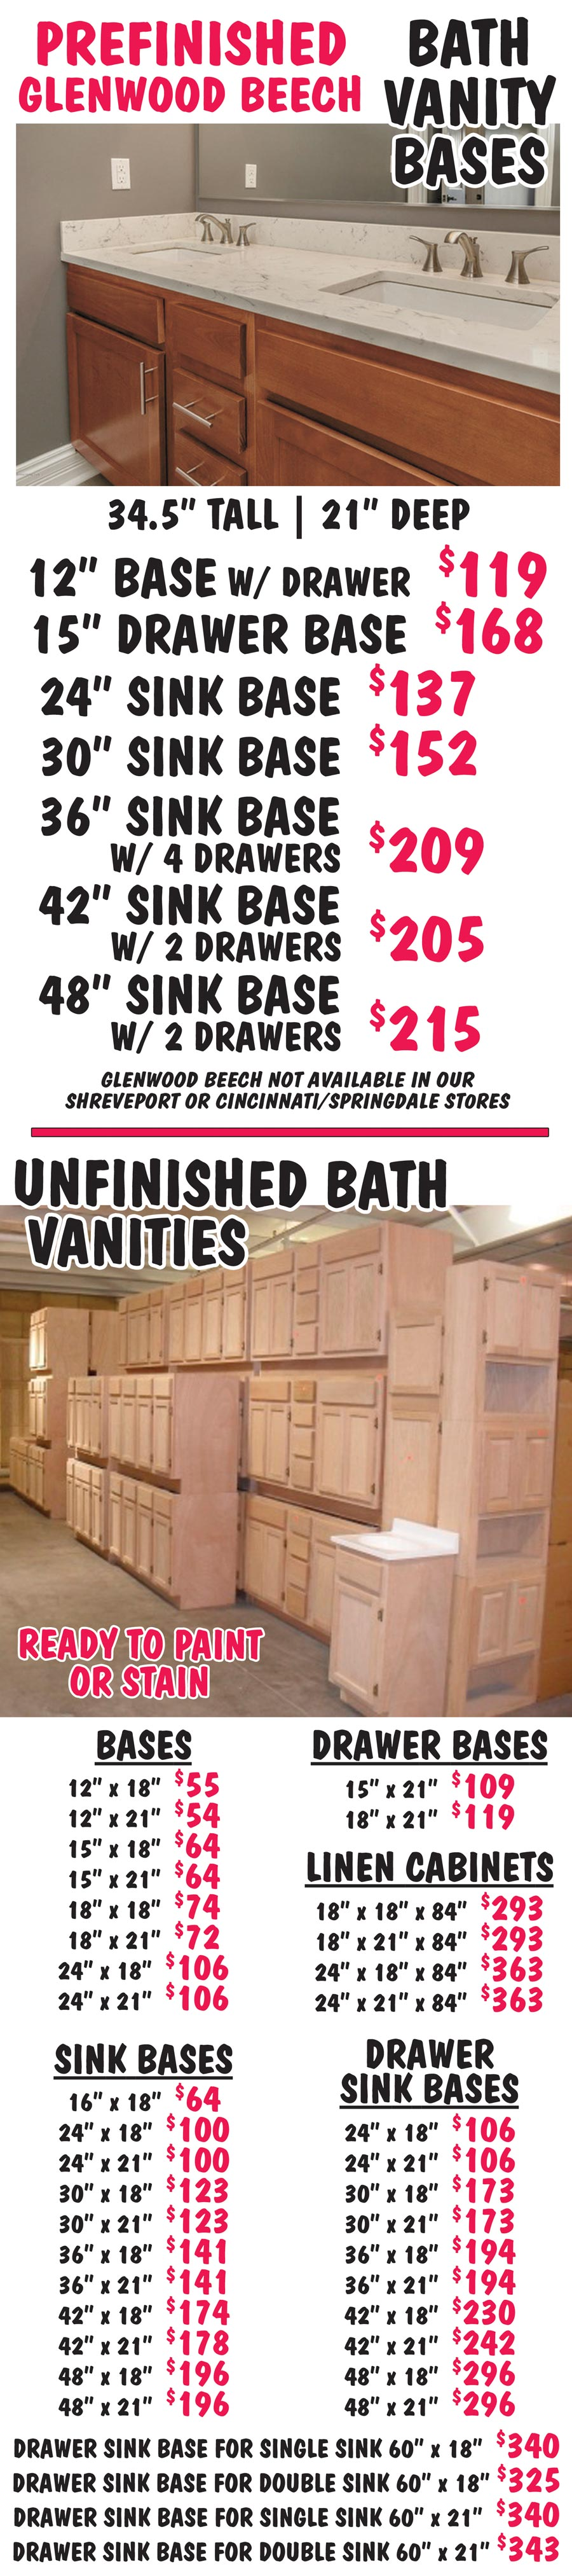 Bath Vanities – Prefinished and Unfinished